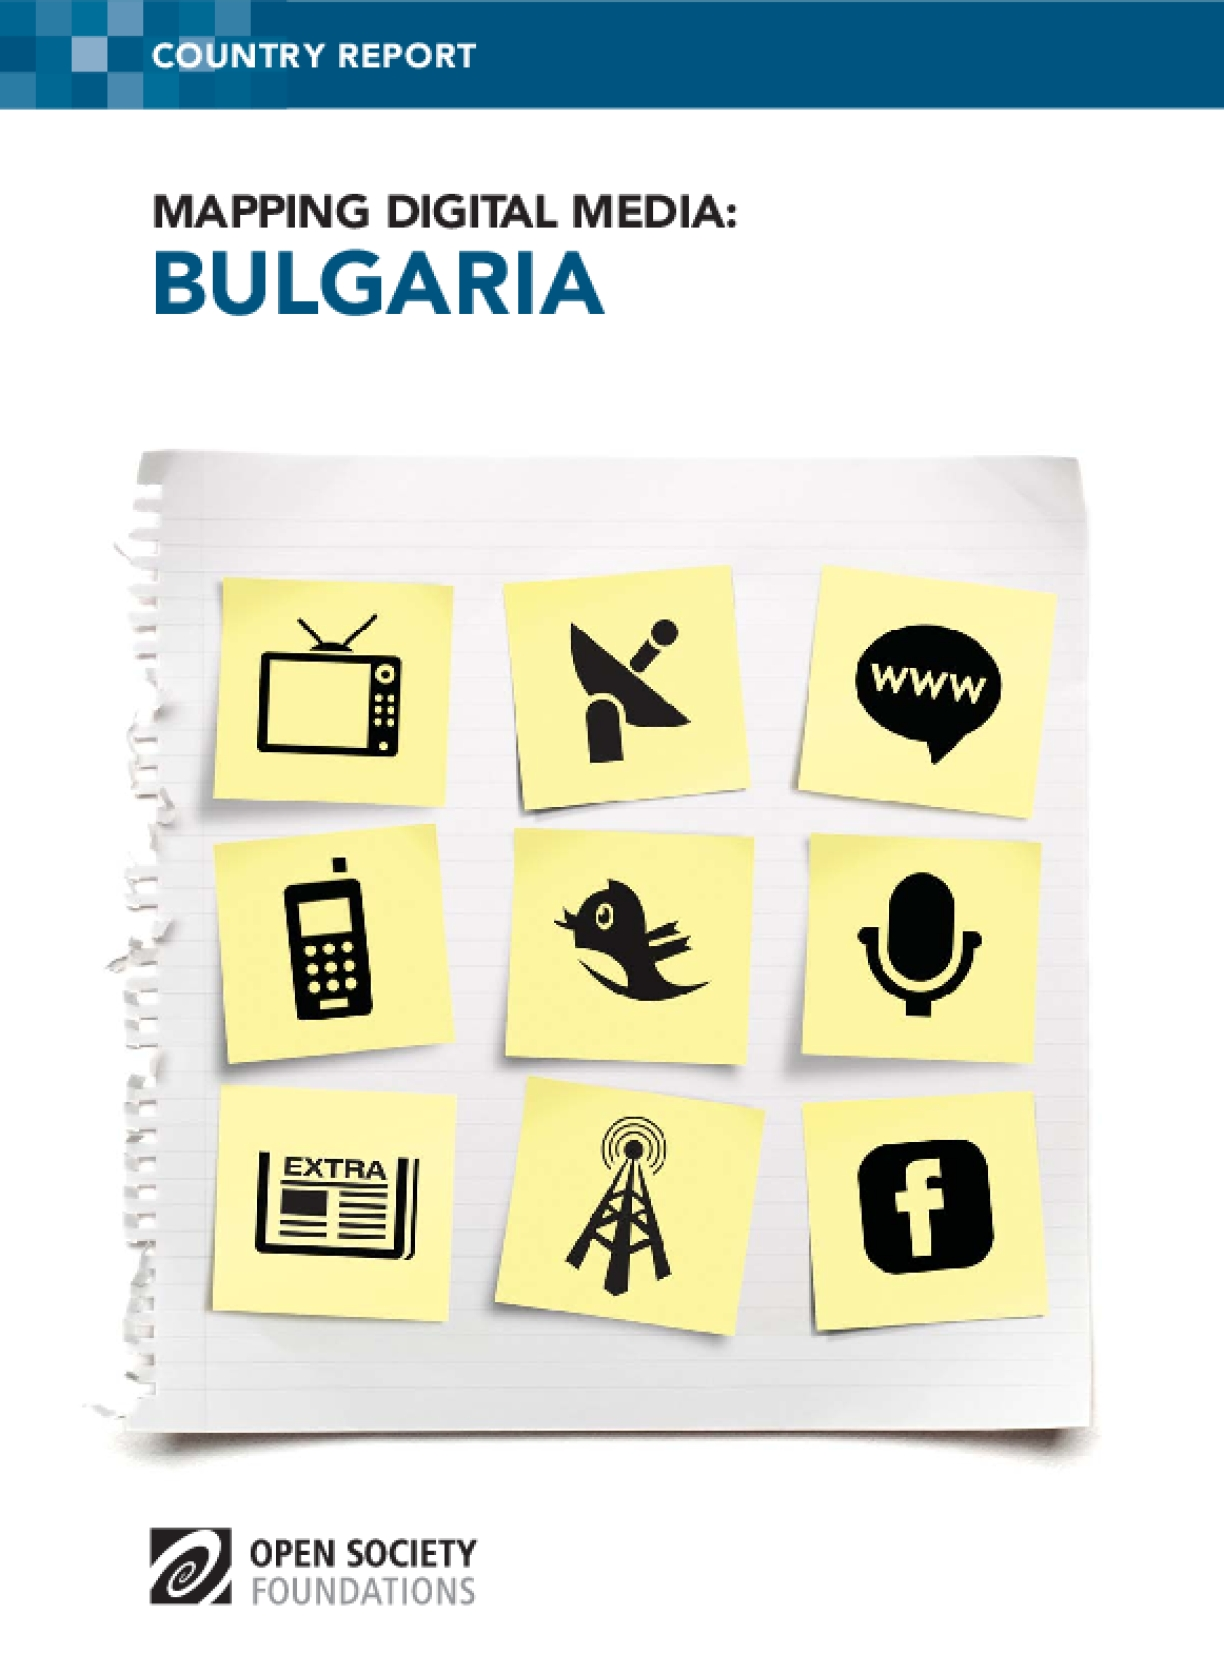 Mapping Digital Media: Bulgaria